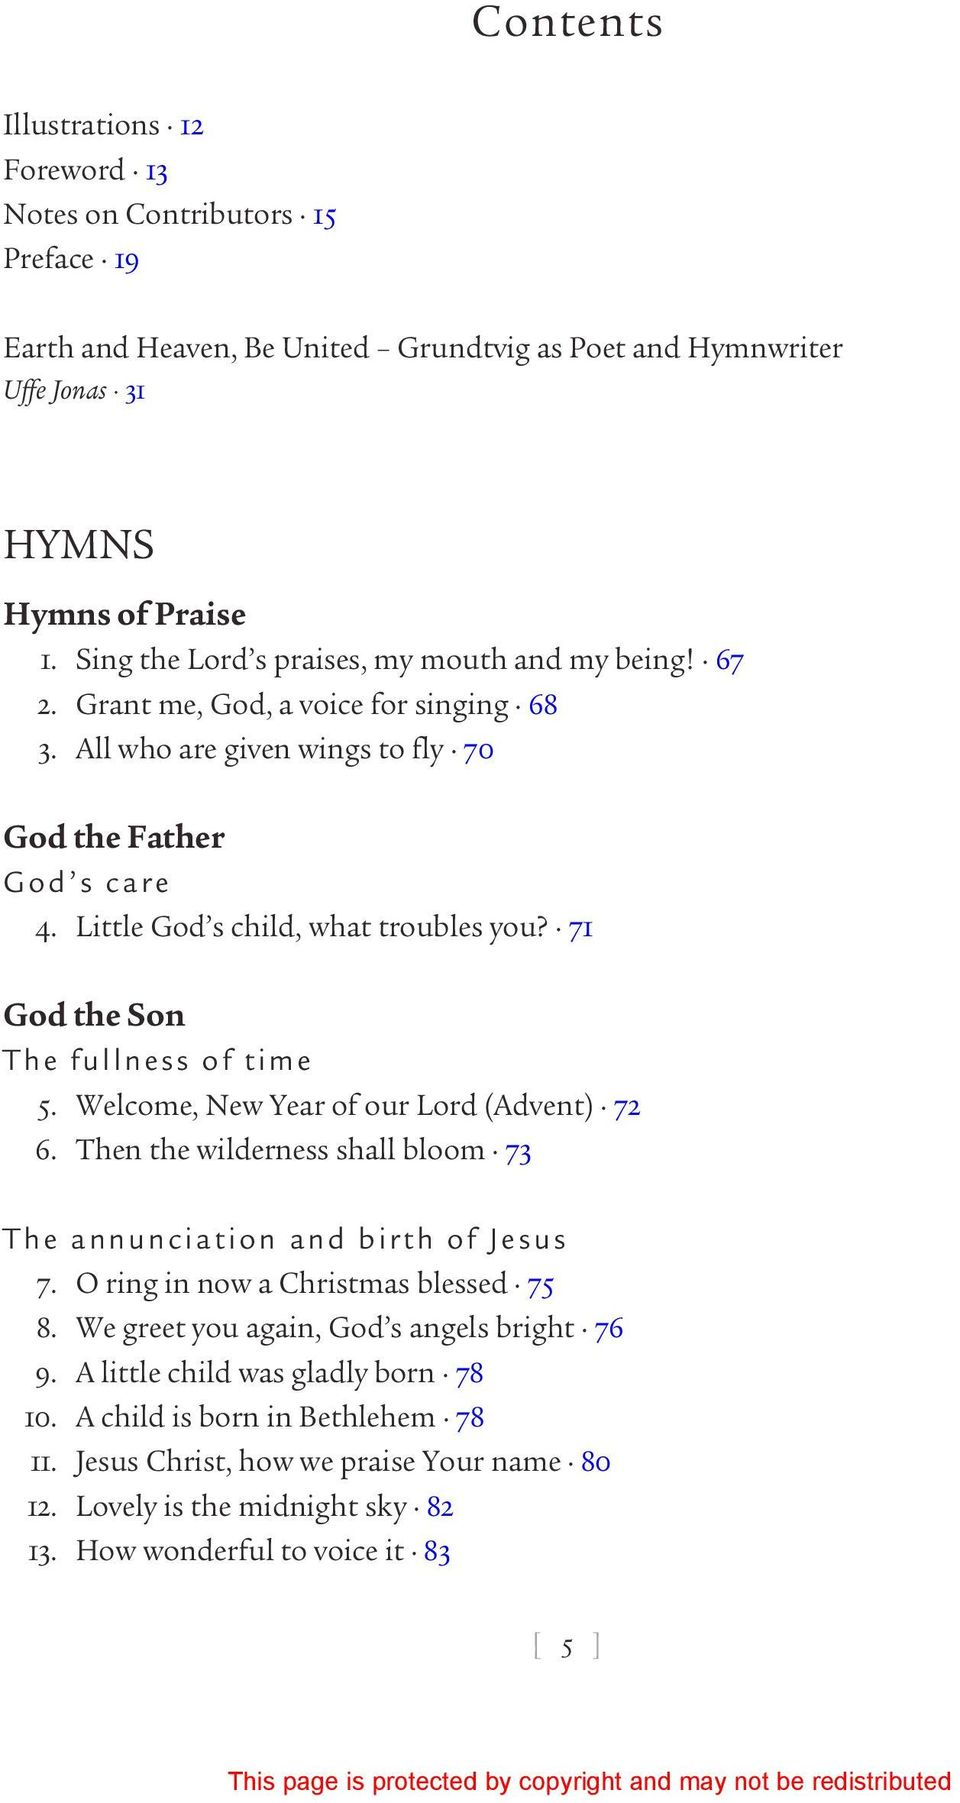 Living Wellsprings Nfsundtvig The Hymns Songs And Poems Of